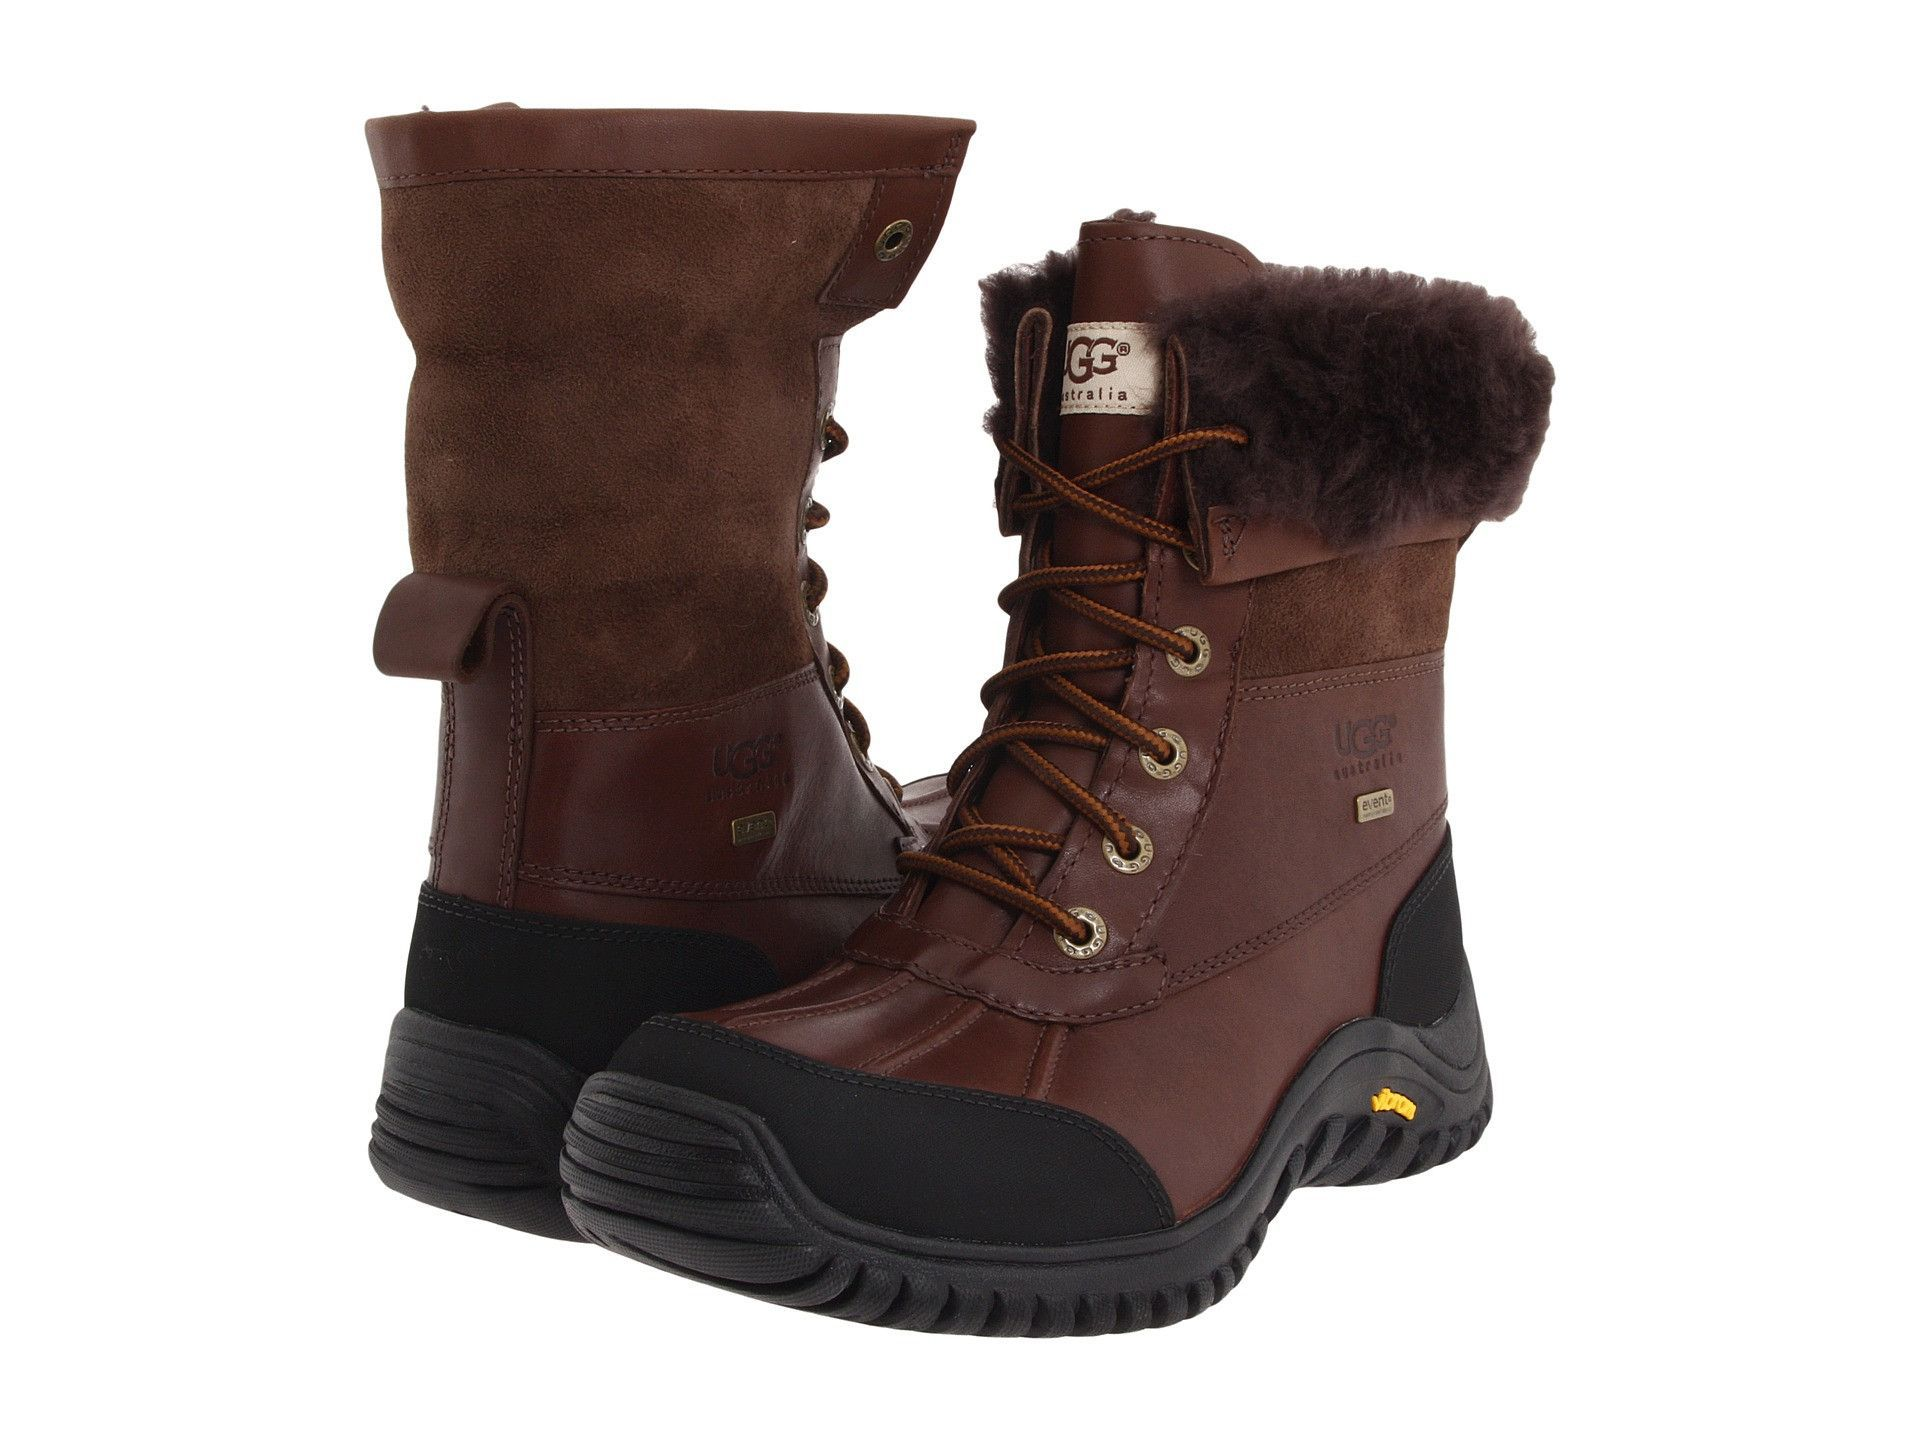 W Ugg - Adirondack Boot II The Adirondack II is a premium cold weather boot.  The leather and sheepskin upper combine to provide you with protection  while ...